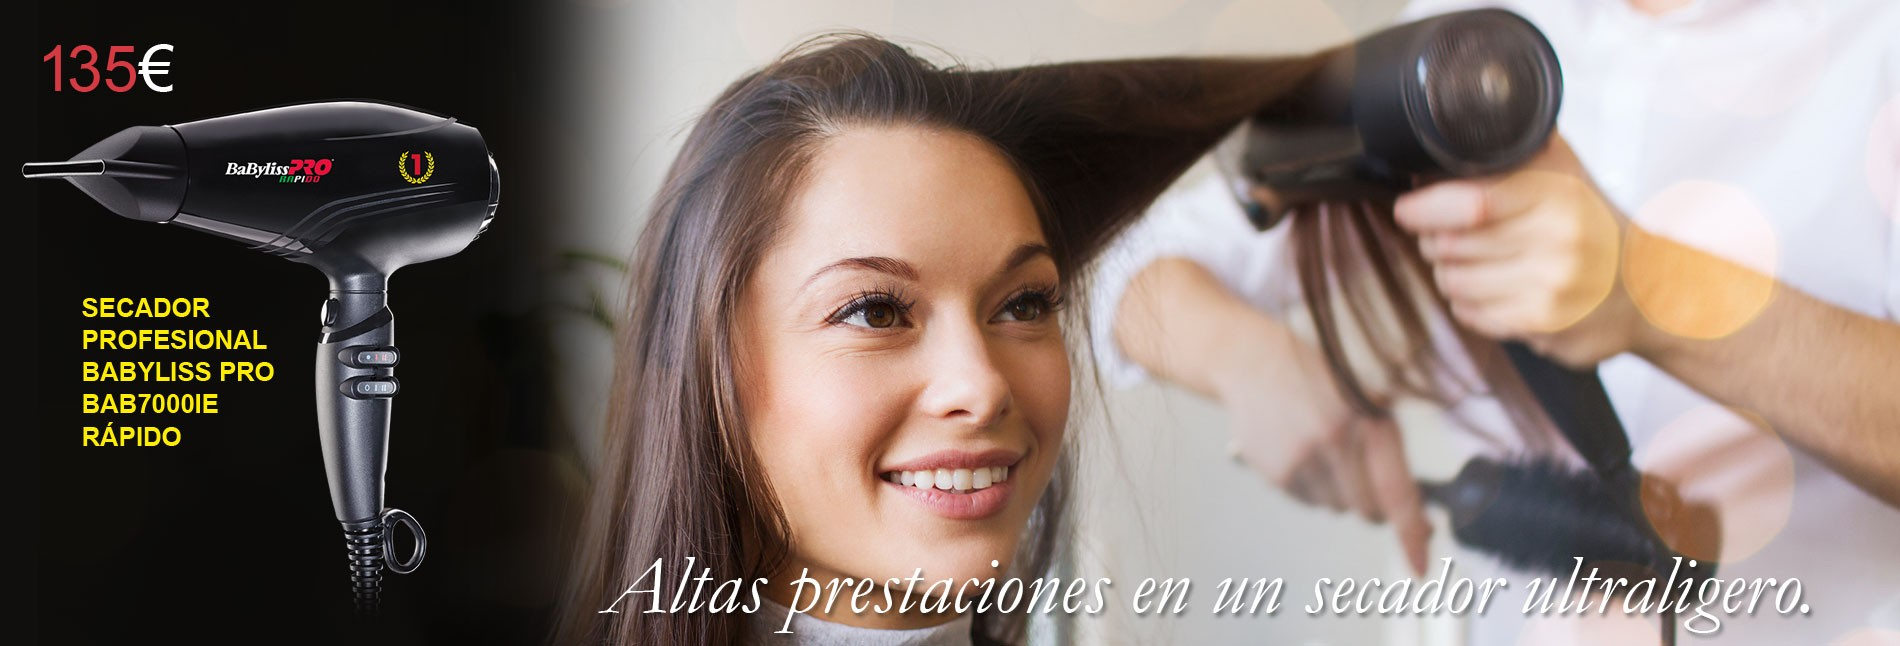 Secador profesional Babyliss Pro BAB7000IE